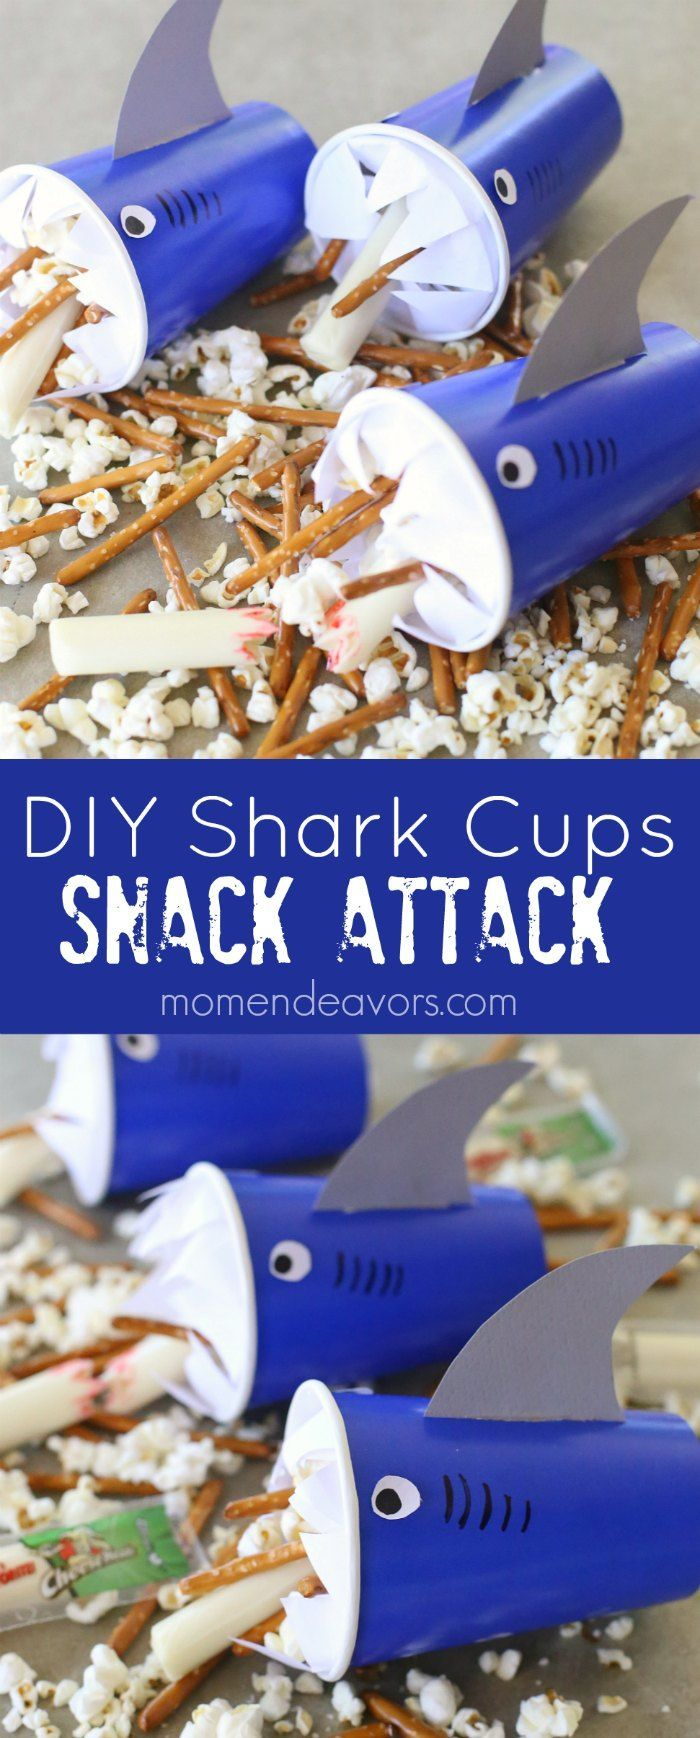 DIY Shark Cups - Snack Attack - Mom Endeavors